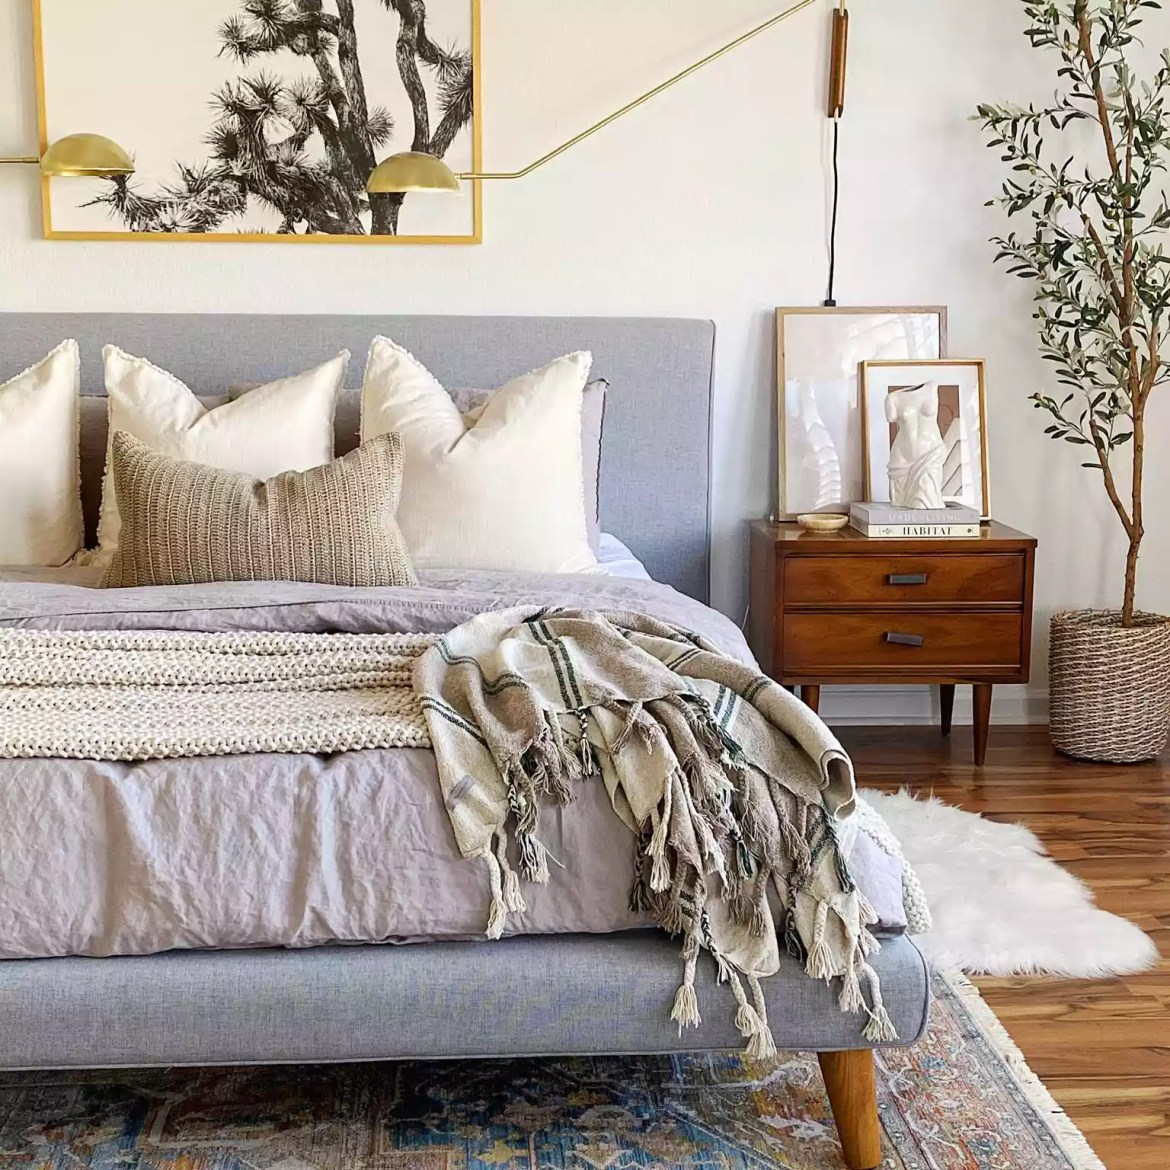 Neutral bedroom with vintage rug and gold lighting.